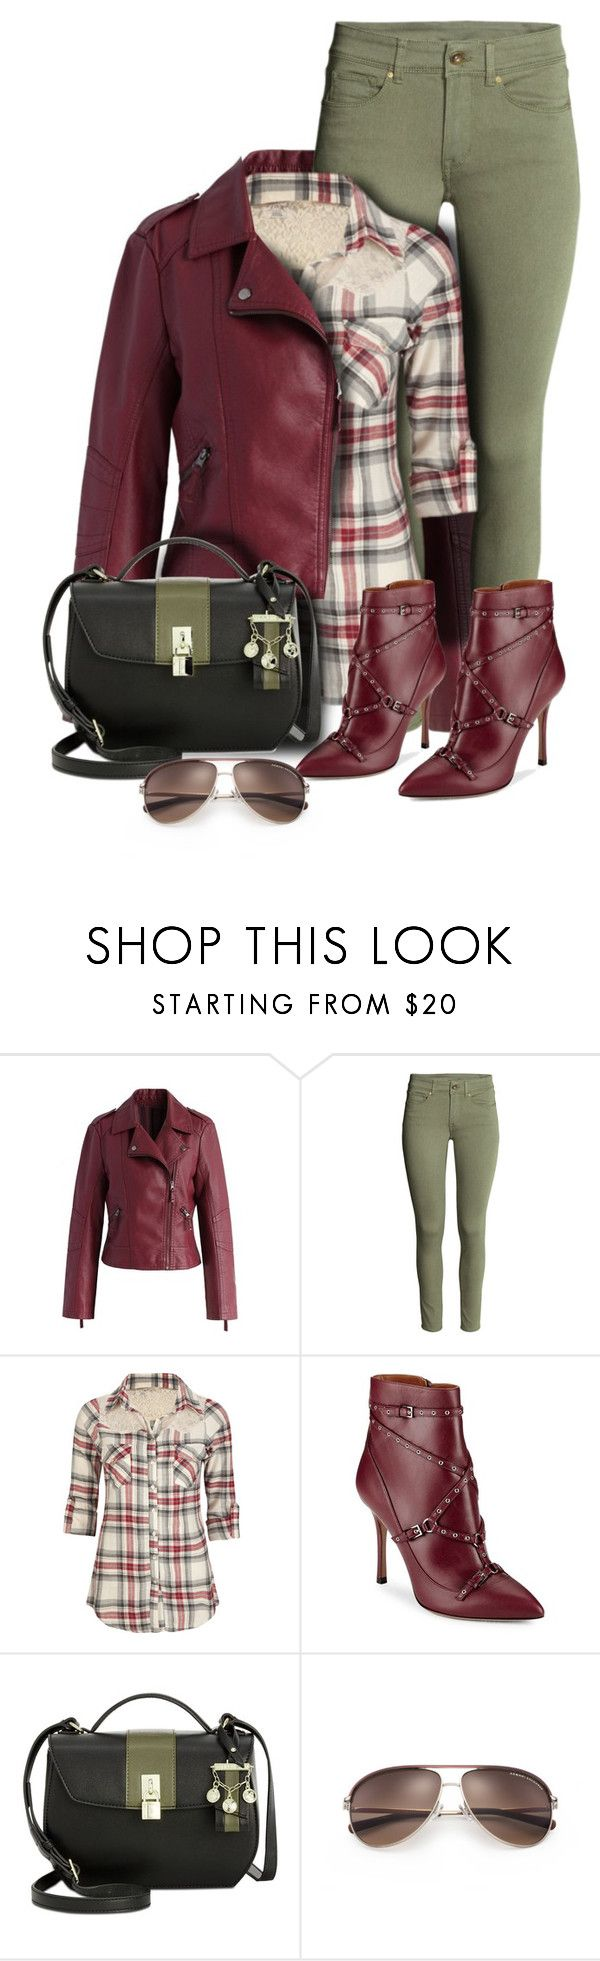 """Ankle boots"" by nicole-christie-mennen ❤ liked on Polyvore featuring Chicwish, Full Tilt, Valentino, Nine West and Armani Exchange"